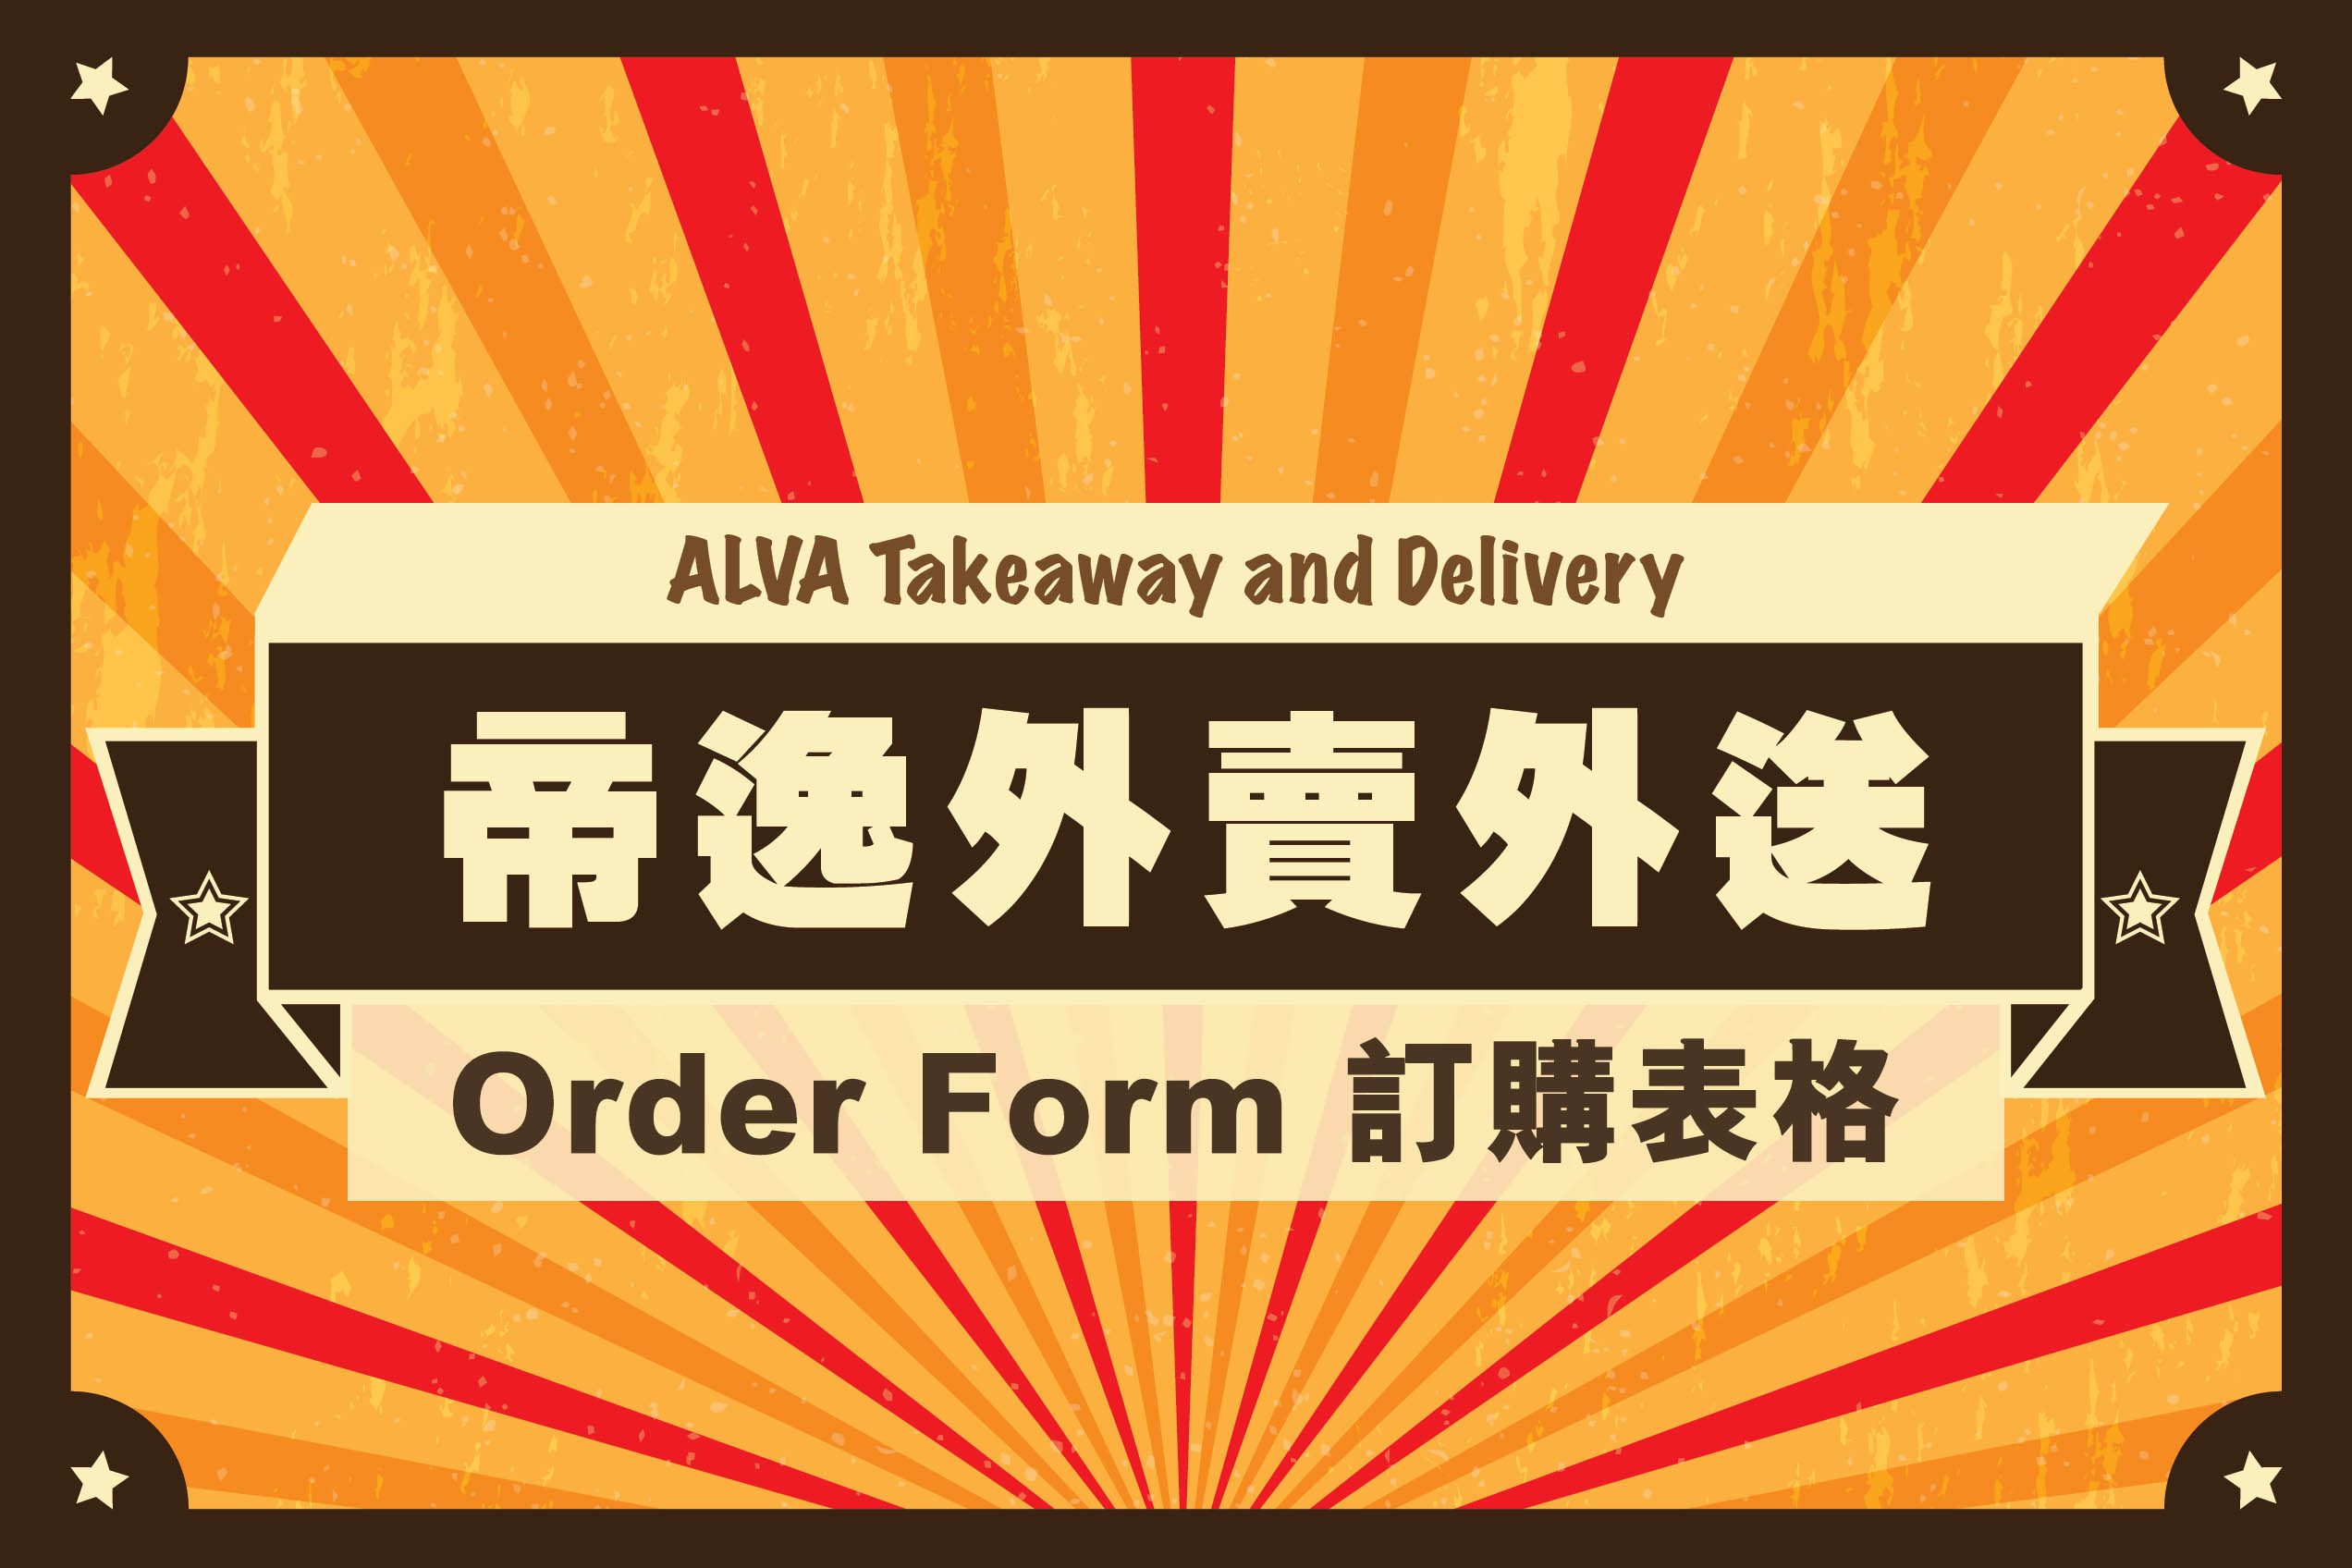 alva-takeaway-and-delivery-order-form-promotion-thumbnail